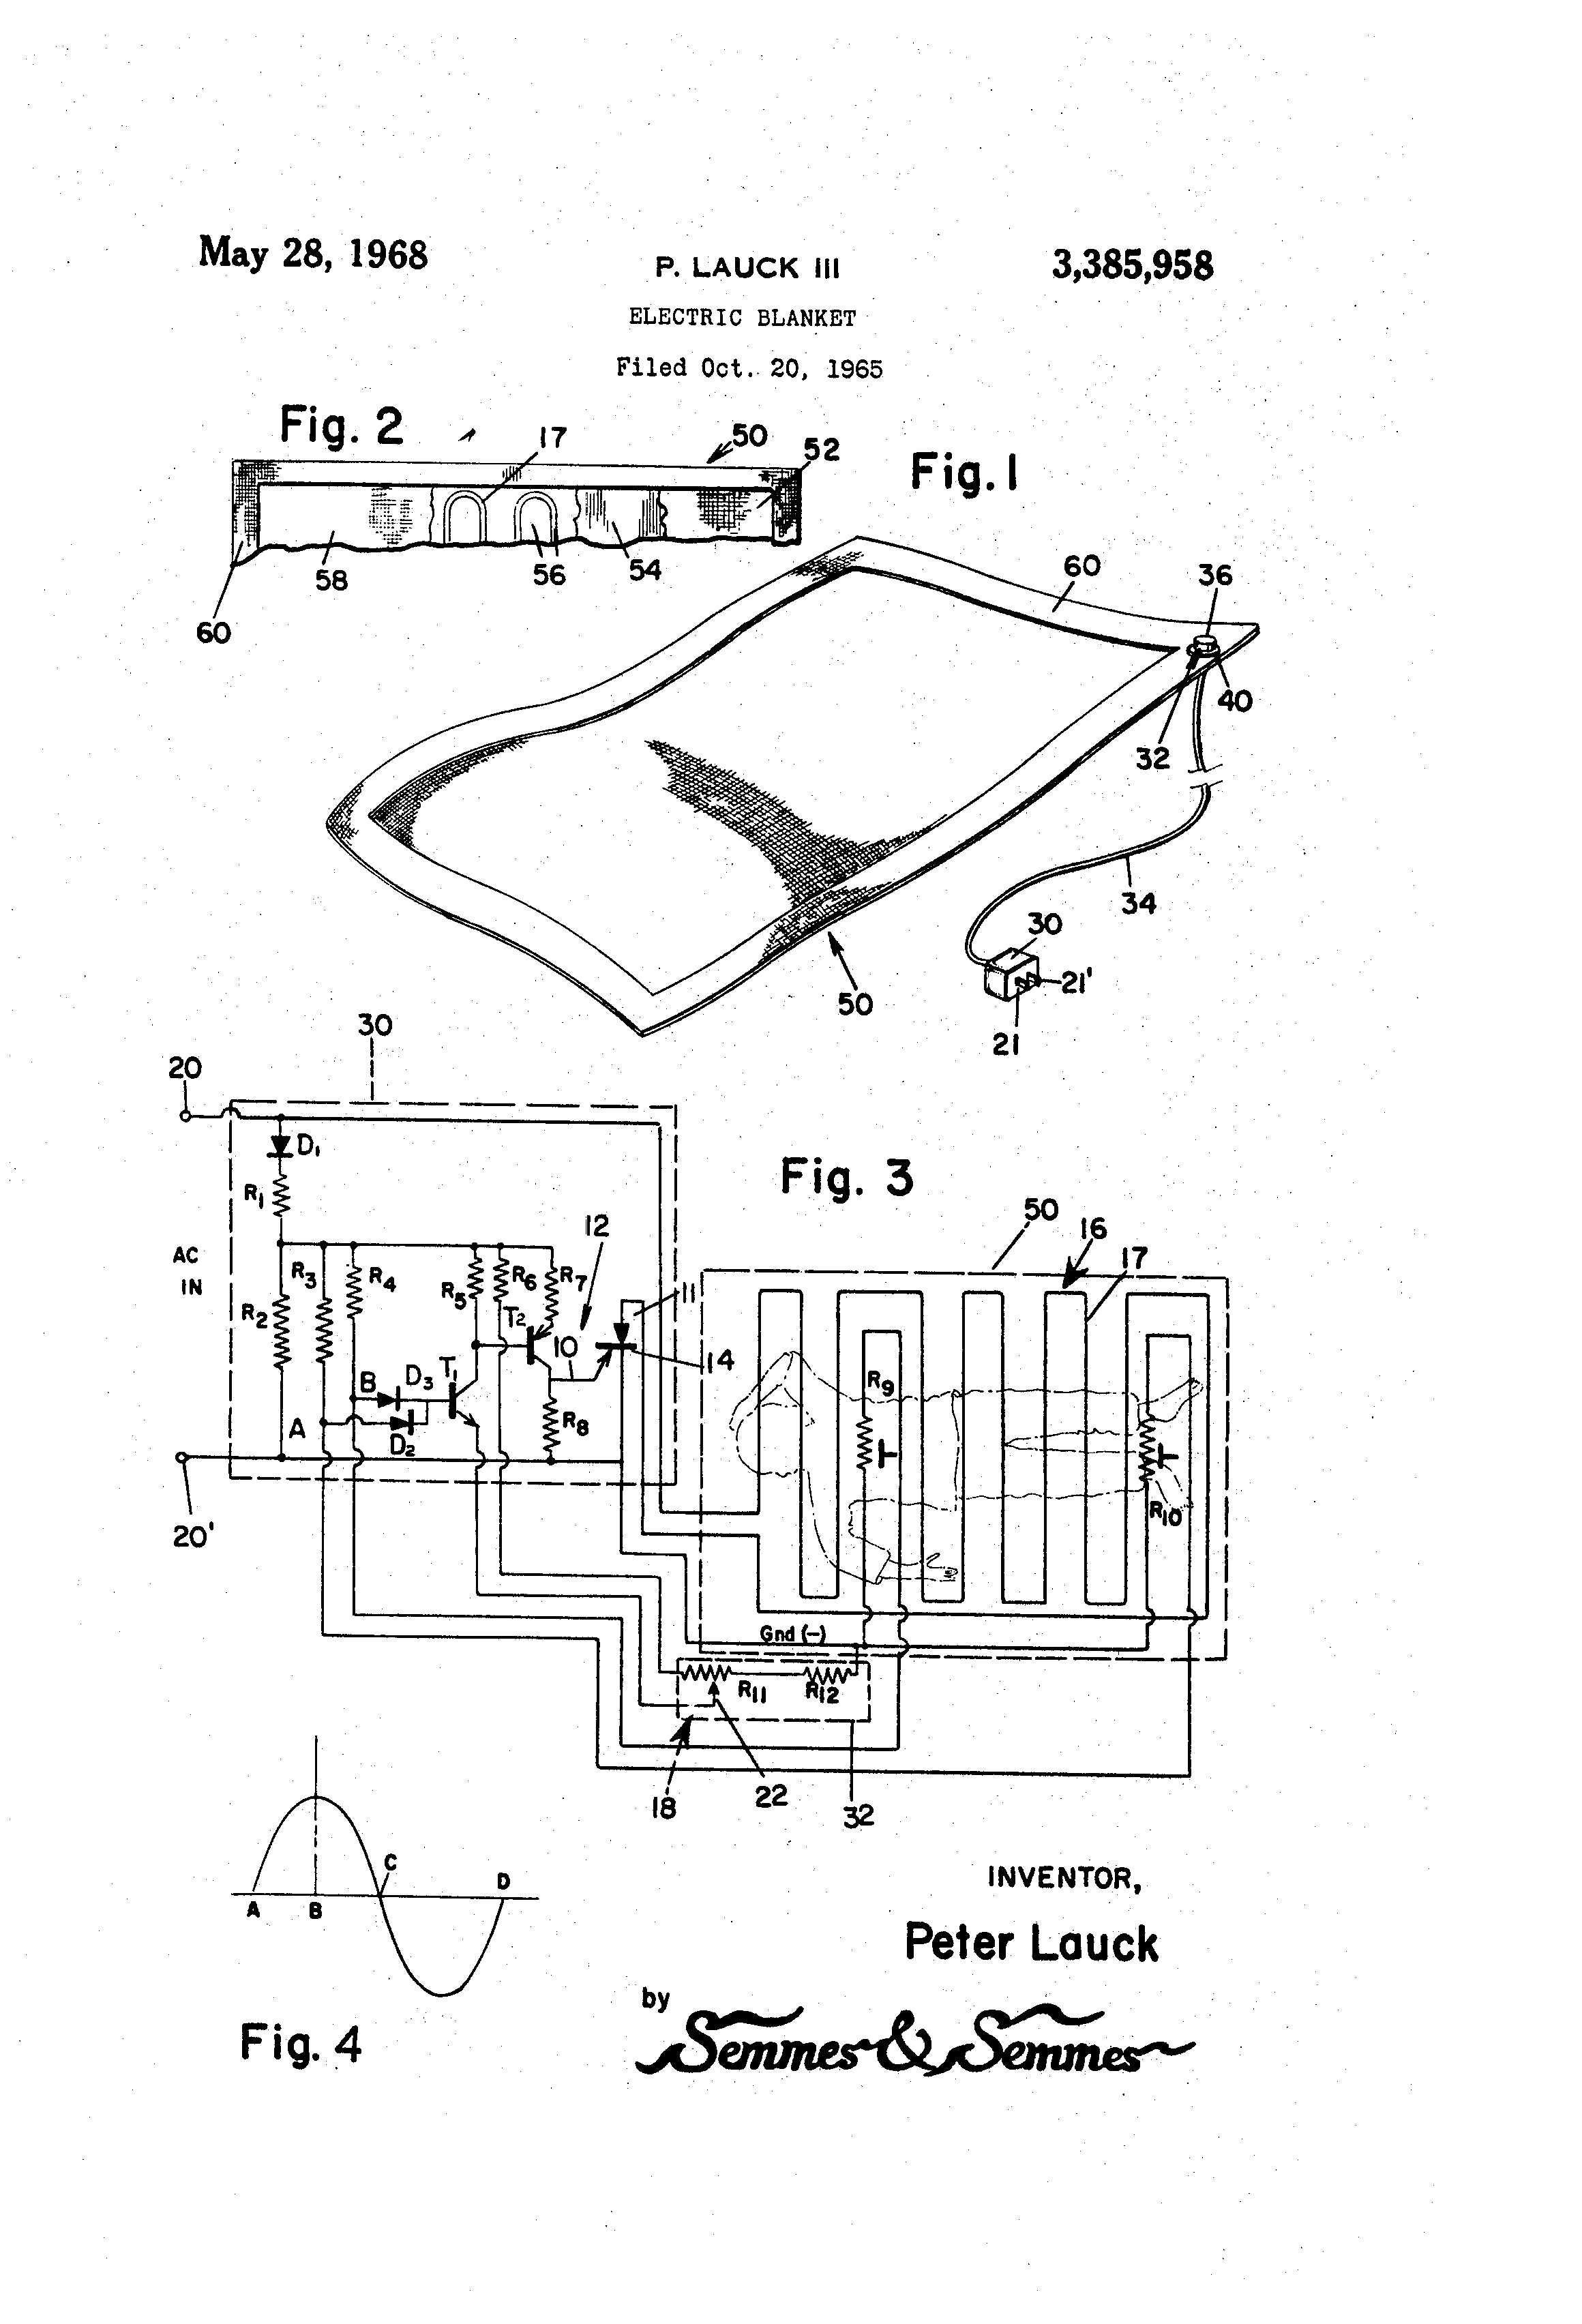 electric blanket wiring diagram human ear and functions patent us3385958 google patents